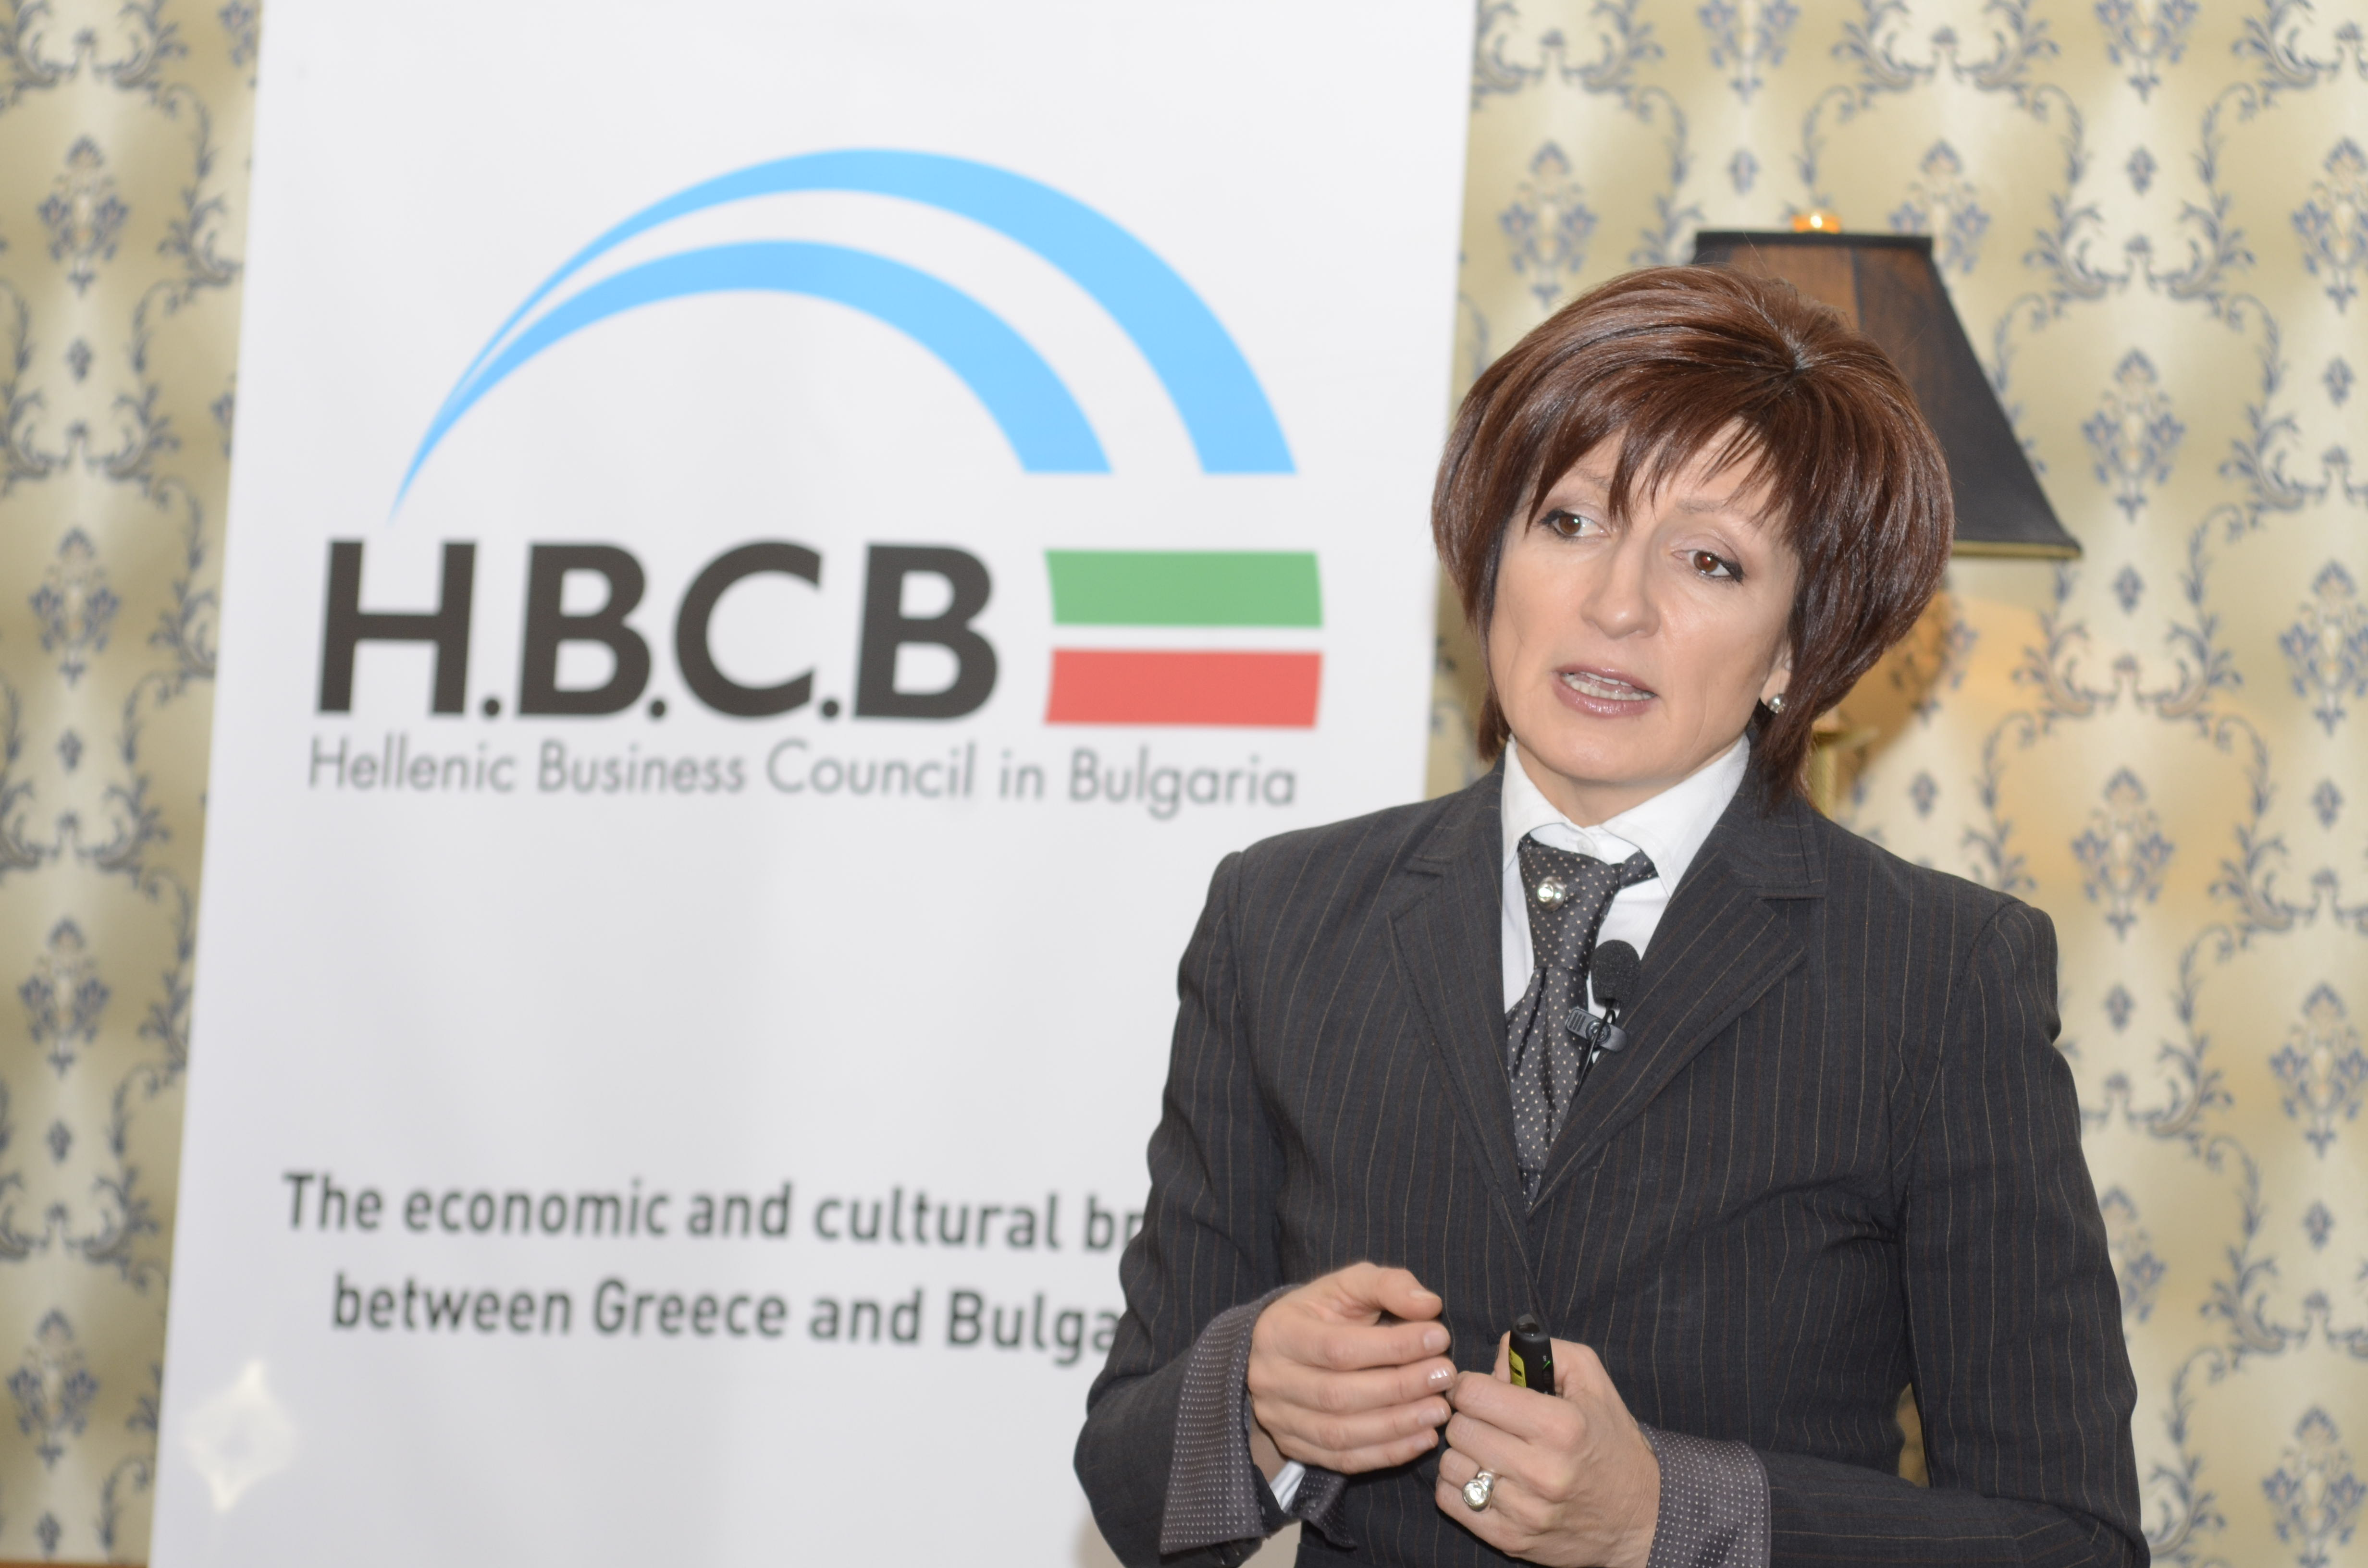 Public Sector Director for Central Eastern Europe in Hewlett-Packard stimulated the thinking of what managers could do in Bulgaria